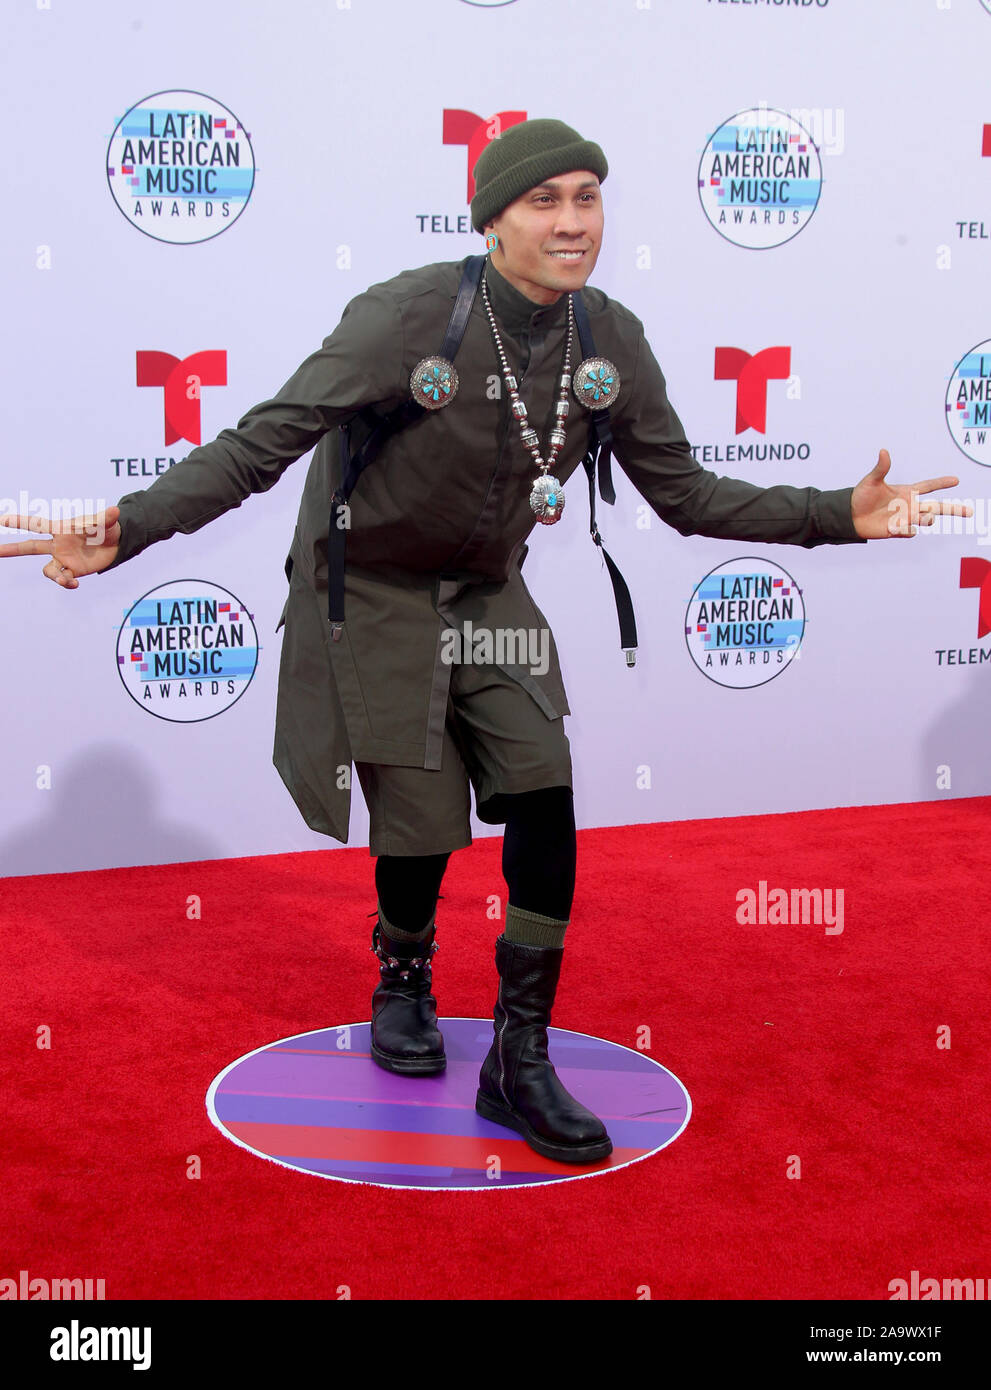 Latin American Music Awards 2019 held at the Dolby Theatre in Hollywood, California. Featuring: Taboo Where: Los Angeles, California, United States When: 17 Oct 2019 Credit: Adriana M. Barraza/WENN.com Stock Photo